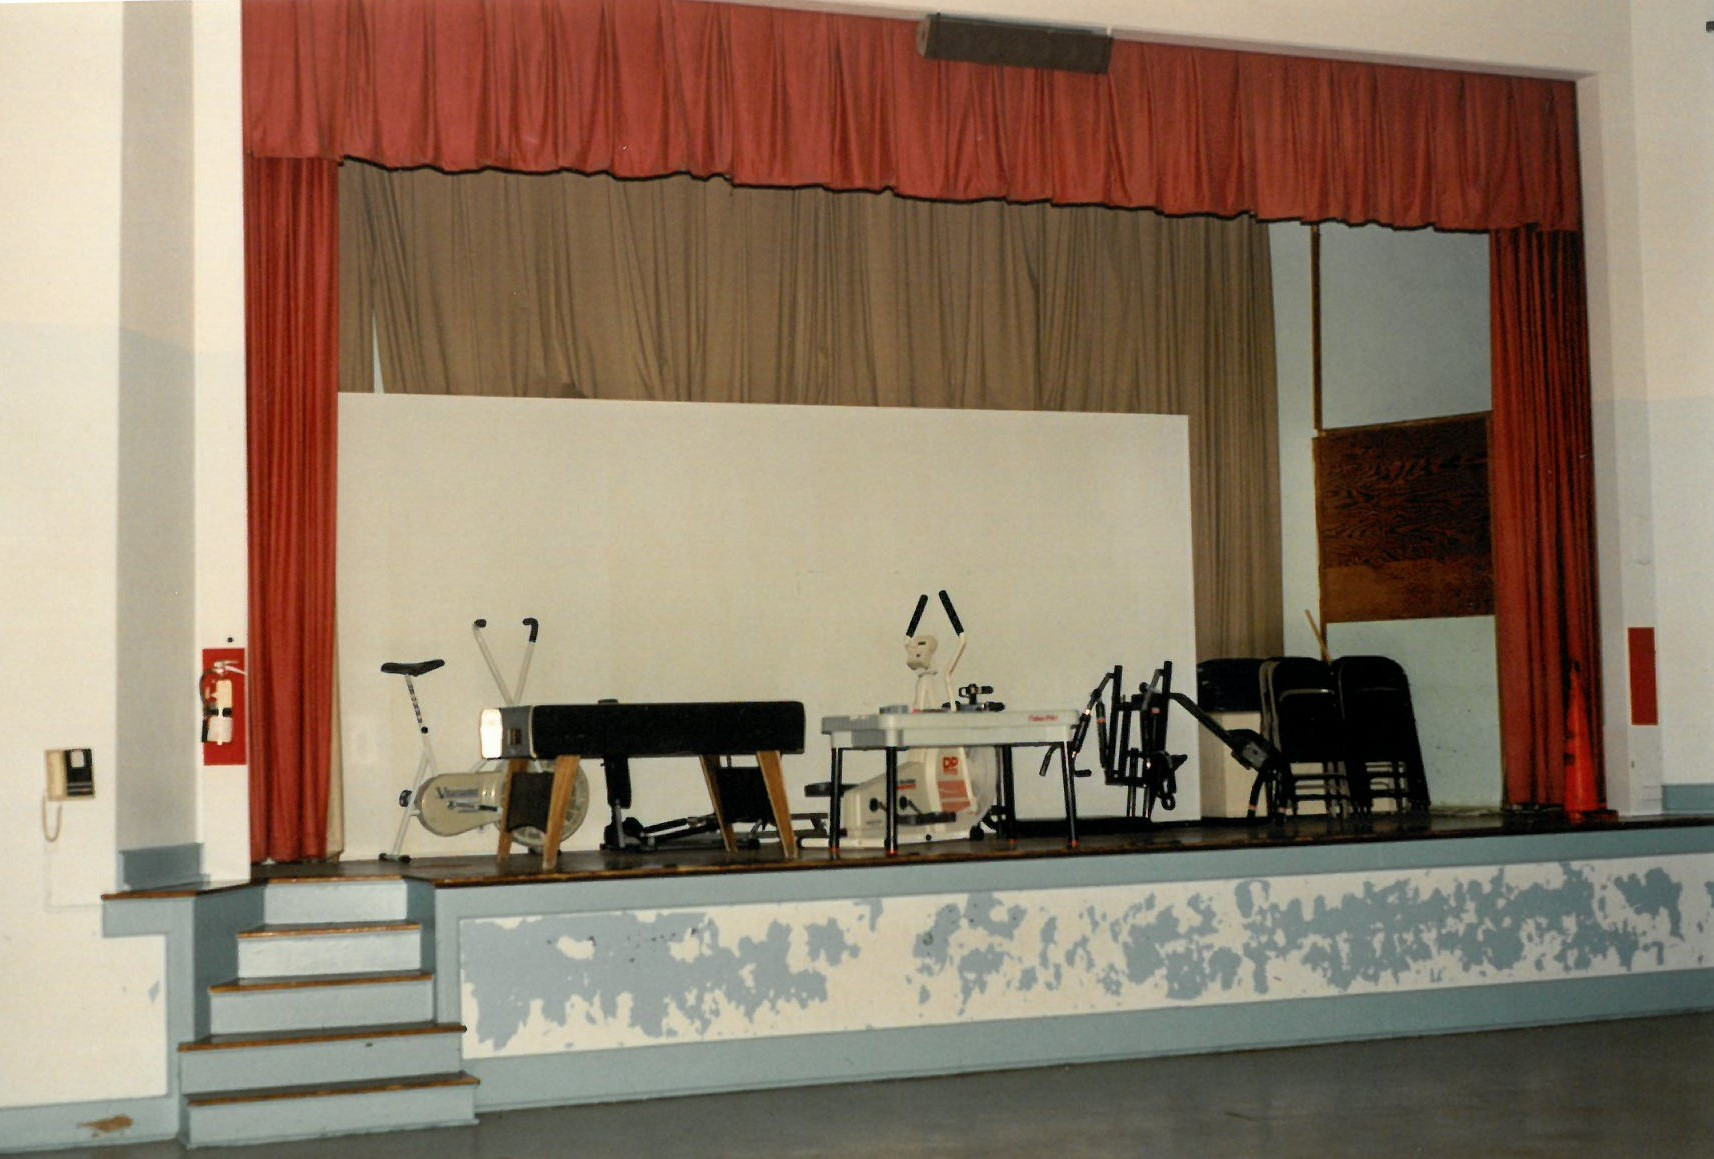 A view of the Court House Elementary School's auditorium.